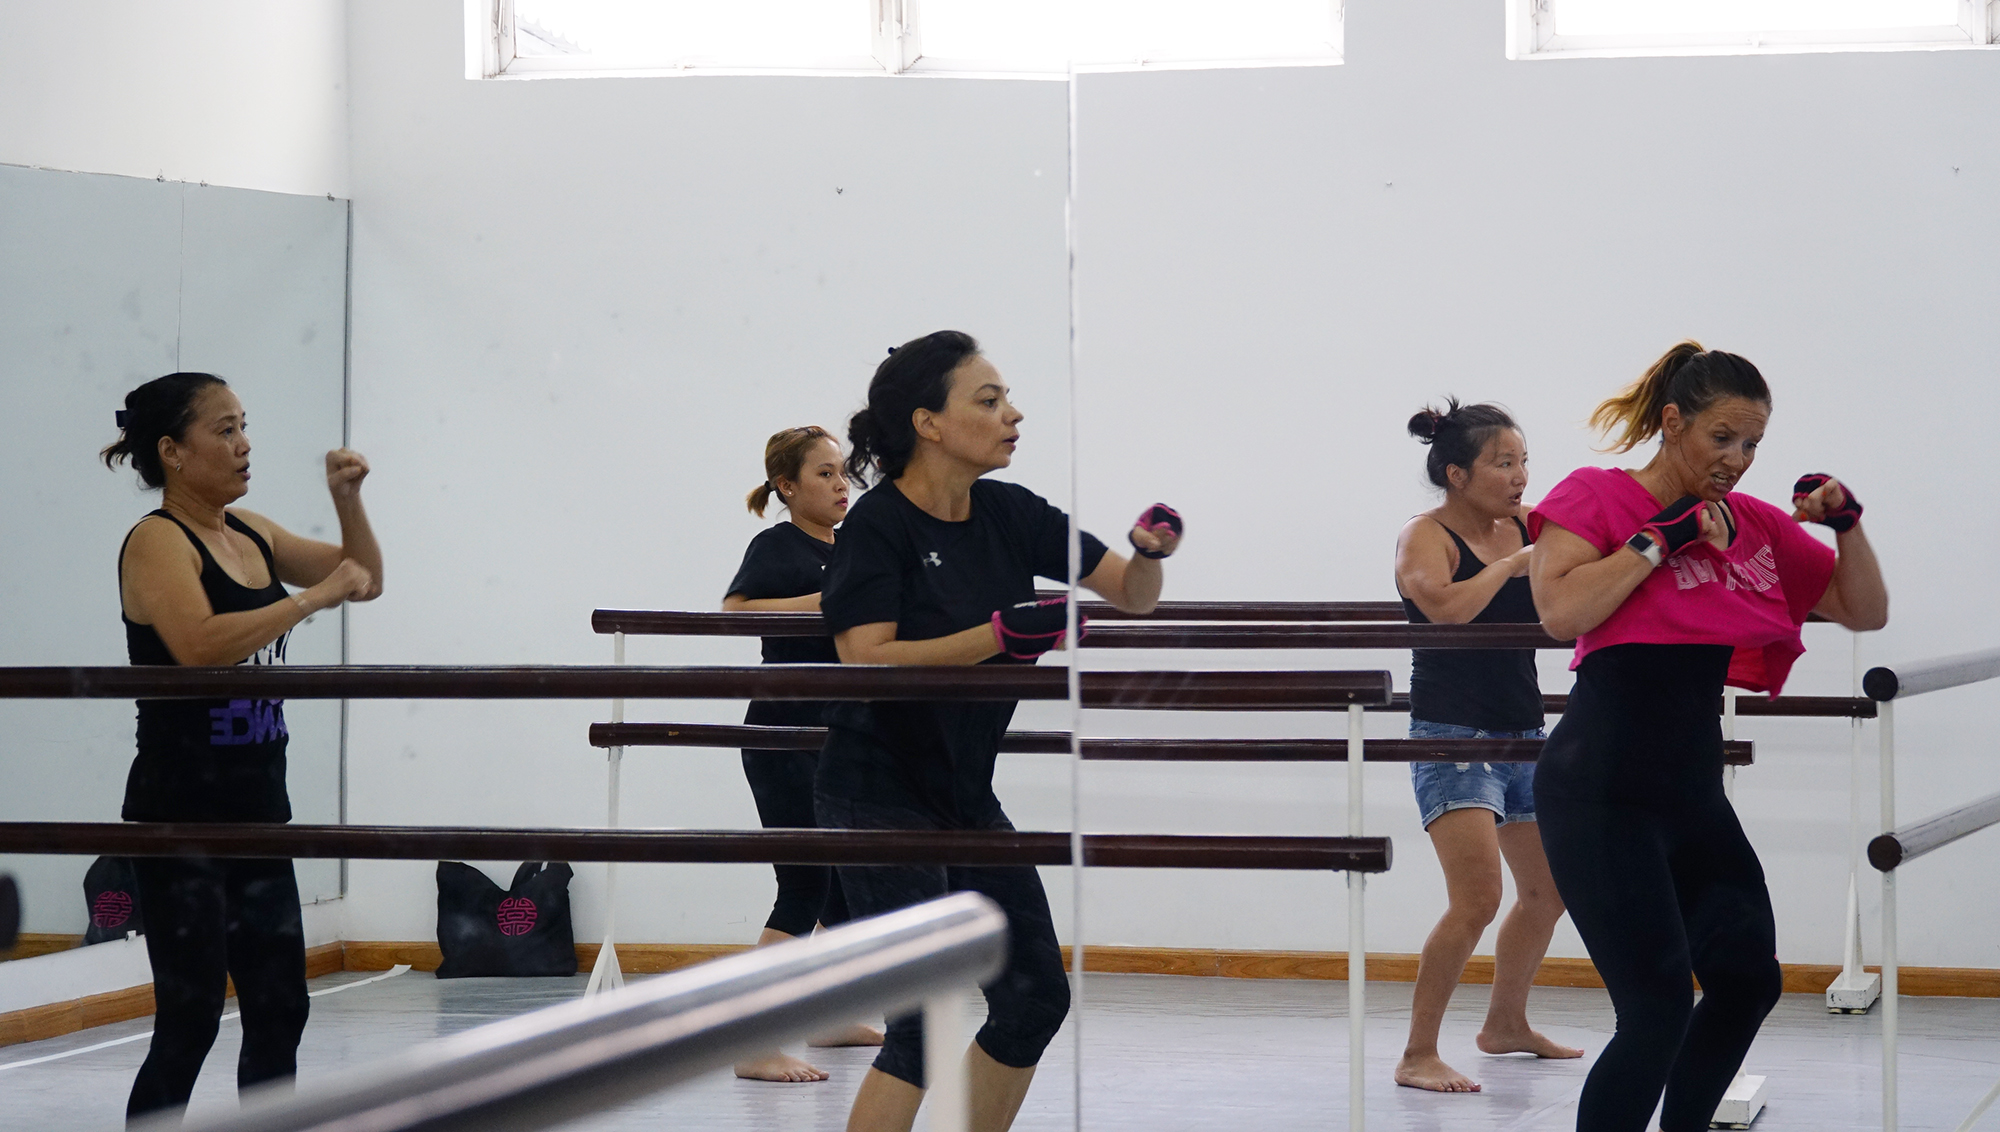 Piloxing barre: a new sports trend for women in Vietnam